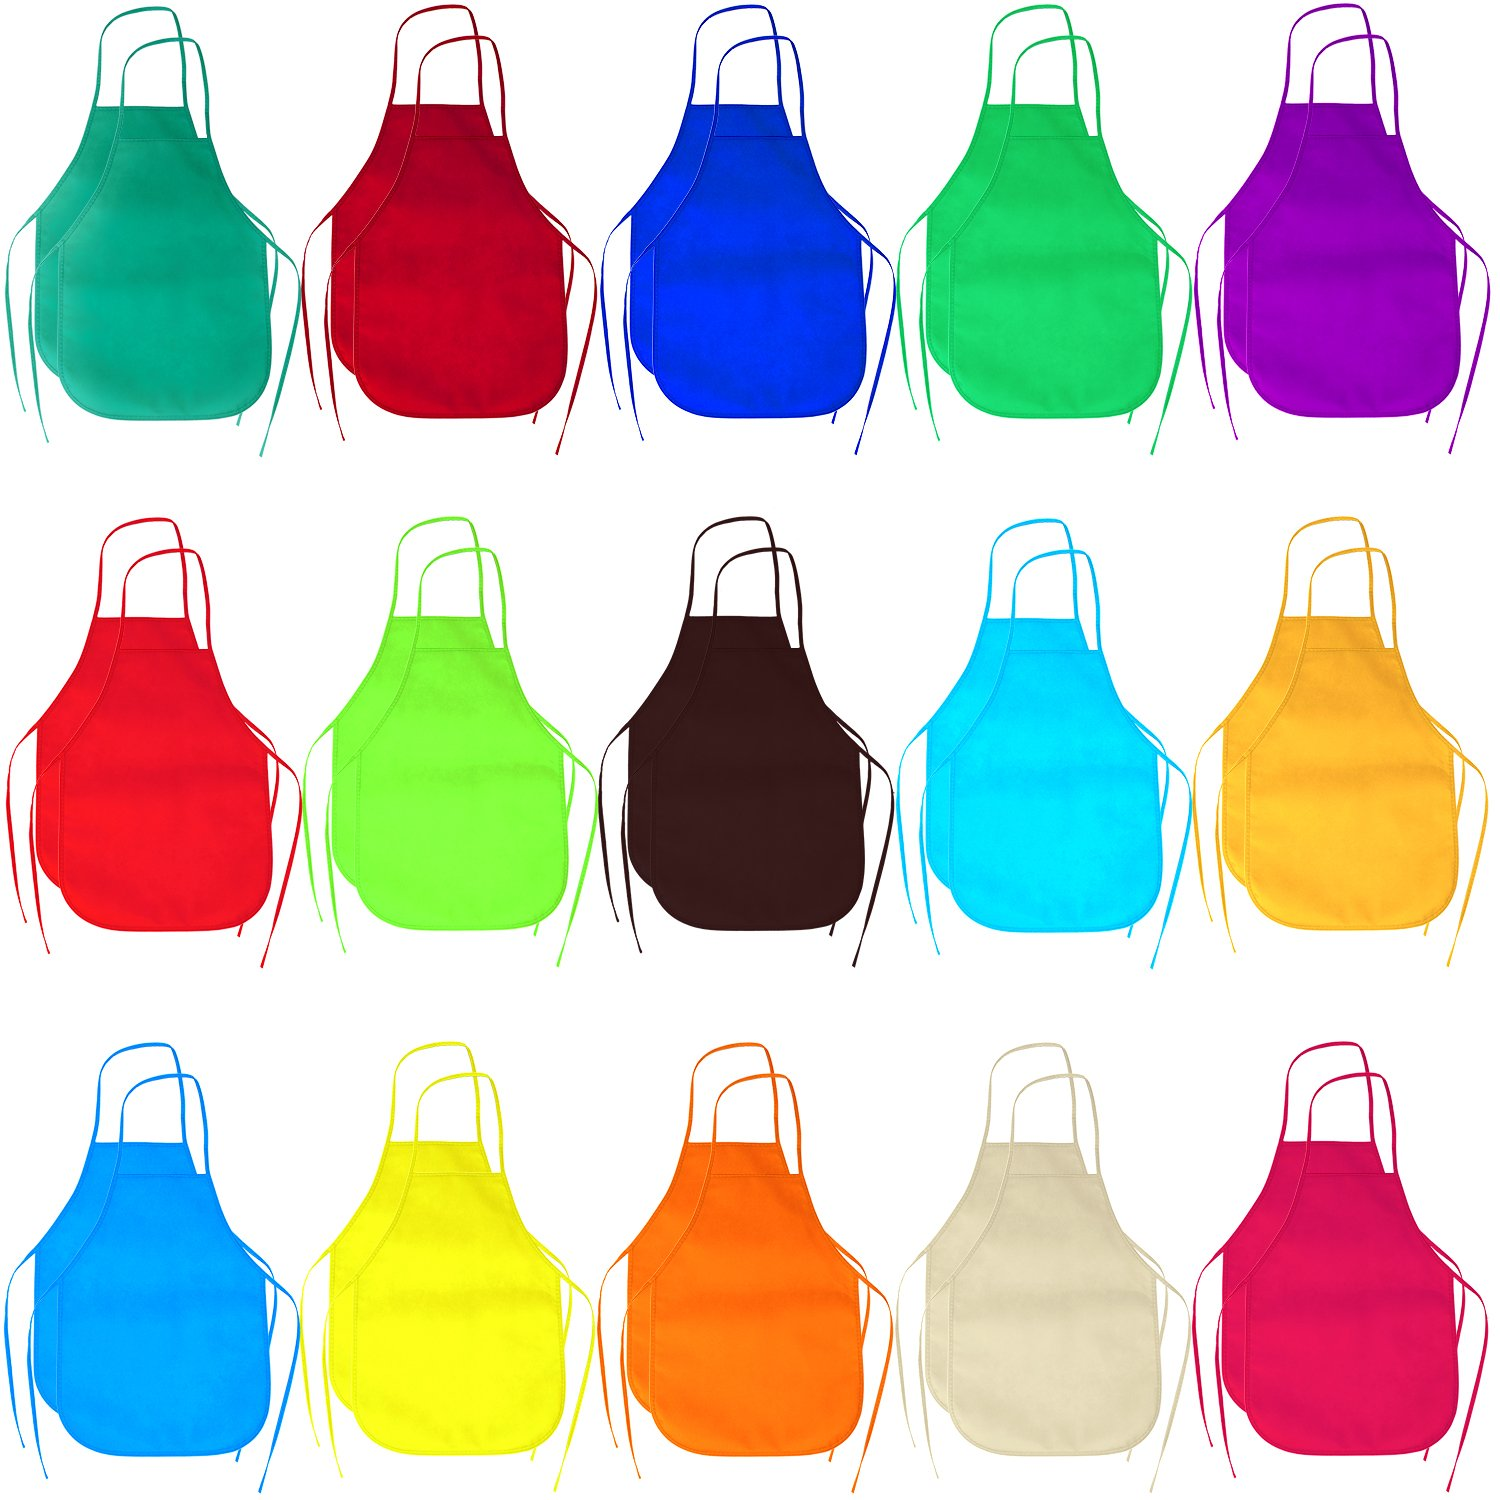 Elcoho 30 Pack 15 Colors Children's Non-woven Artists Fabric Aprons Preschool Kids Reusable Apron for Painting Dining and Craft